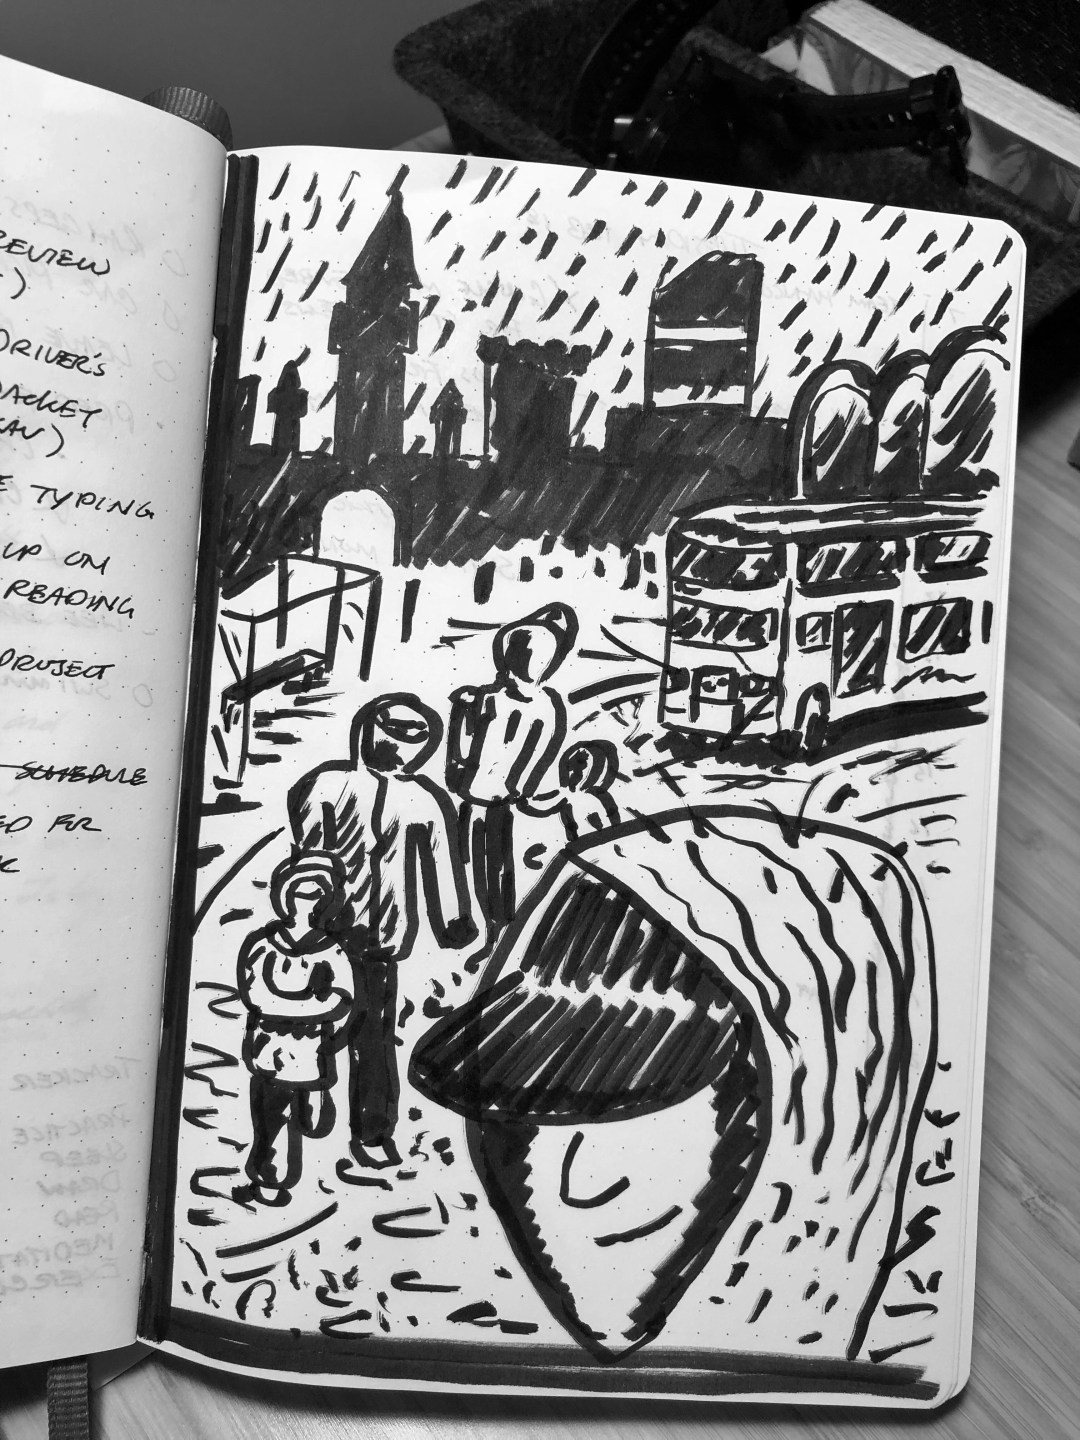 Standing in the rain waiting for a bus. Illustration.